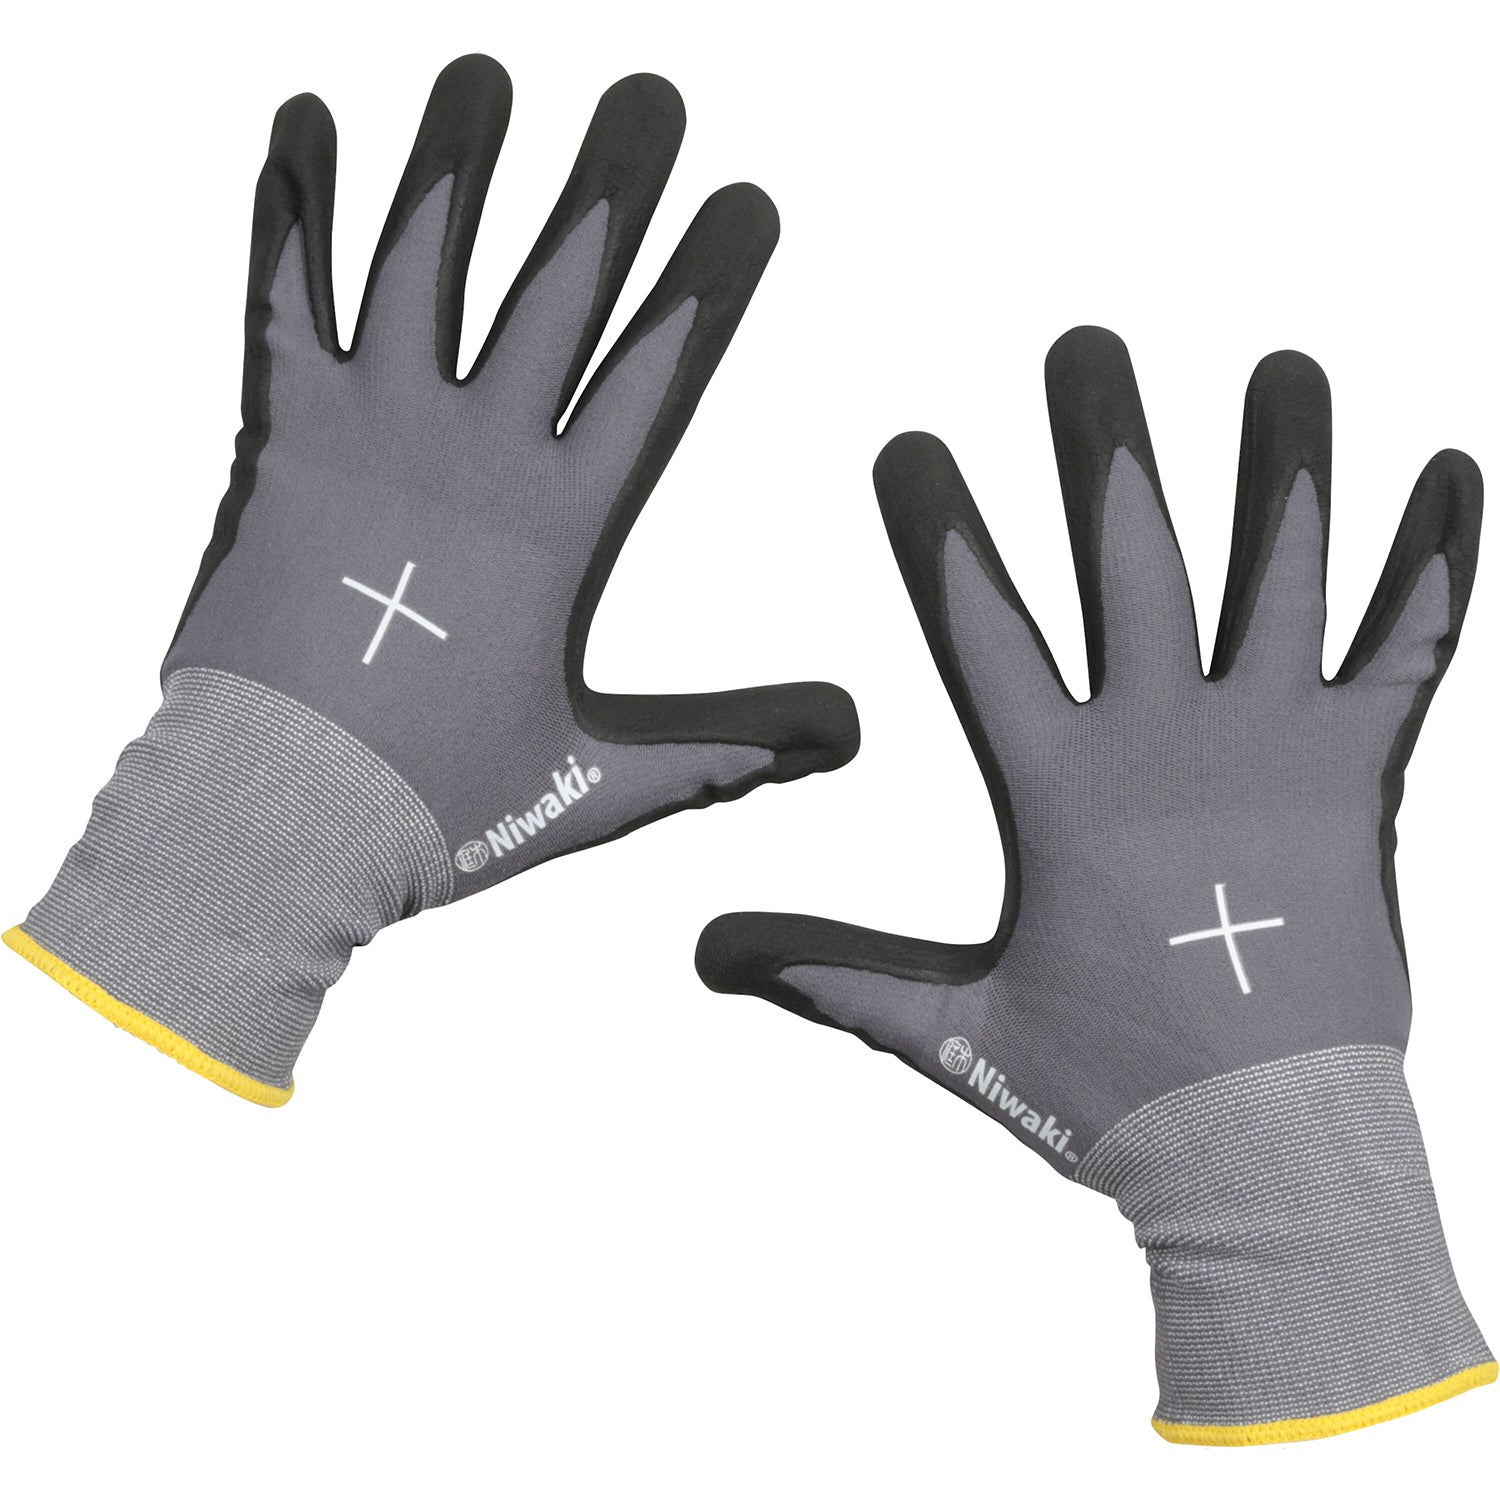 Gardening Gloves - Extra Large with Yellow Cuff